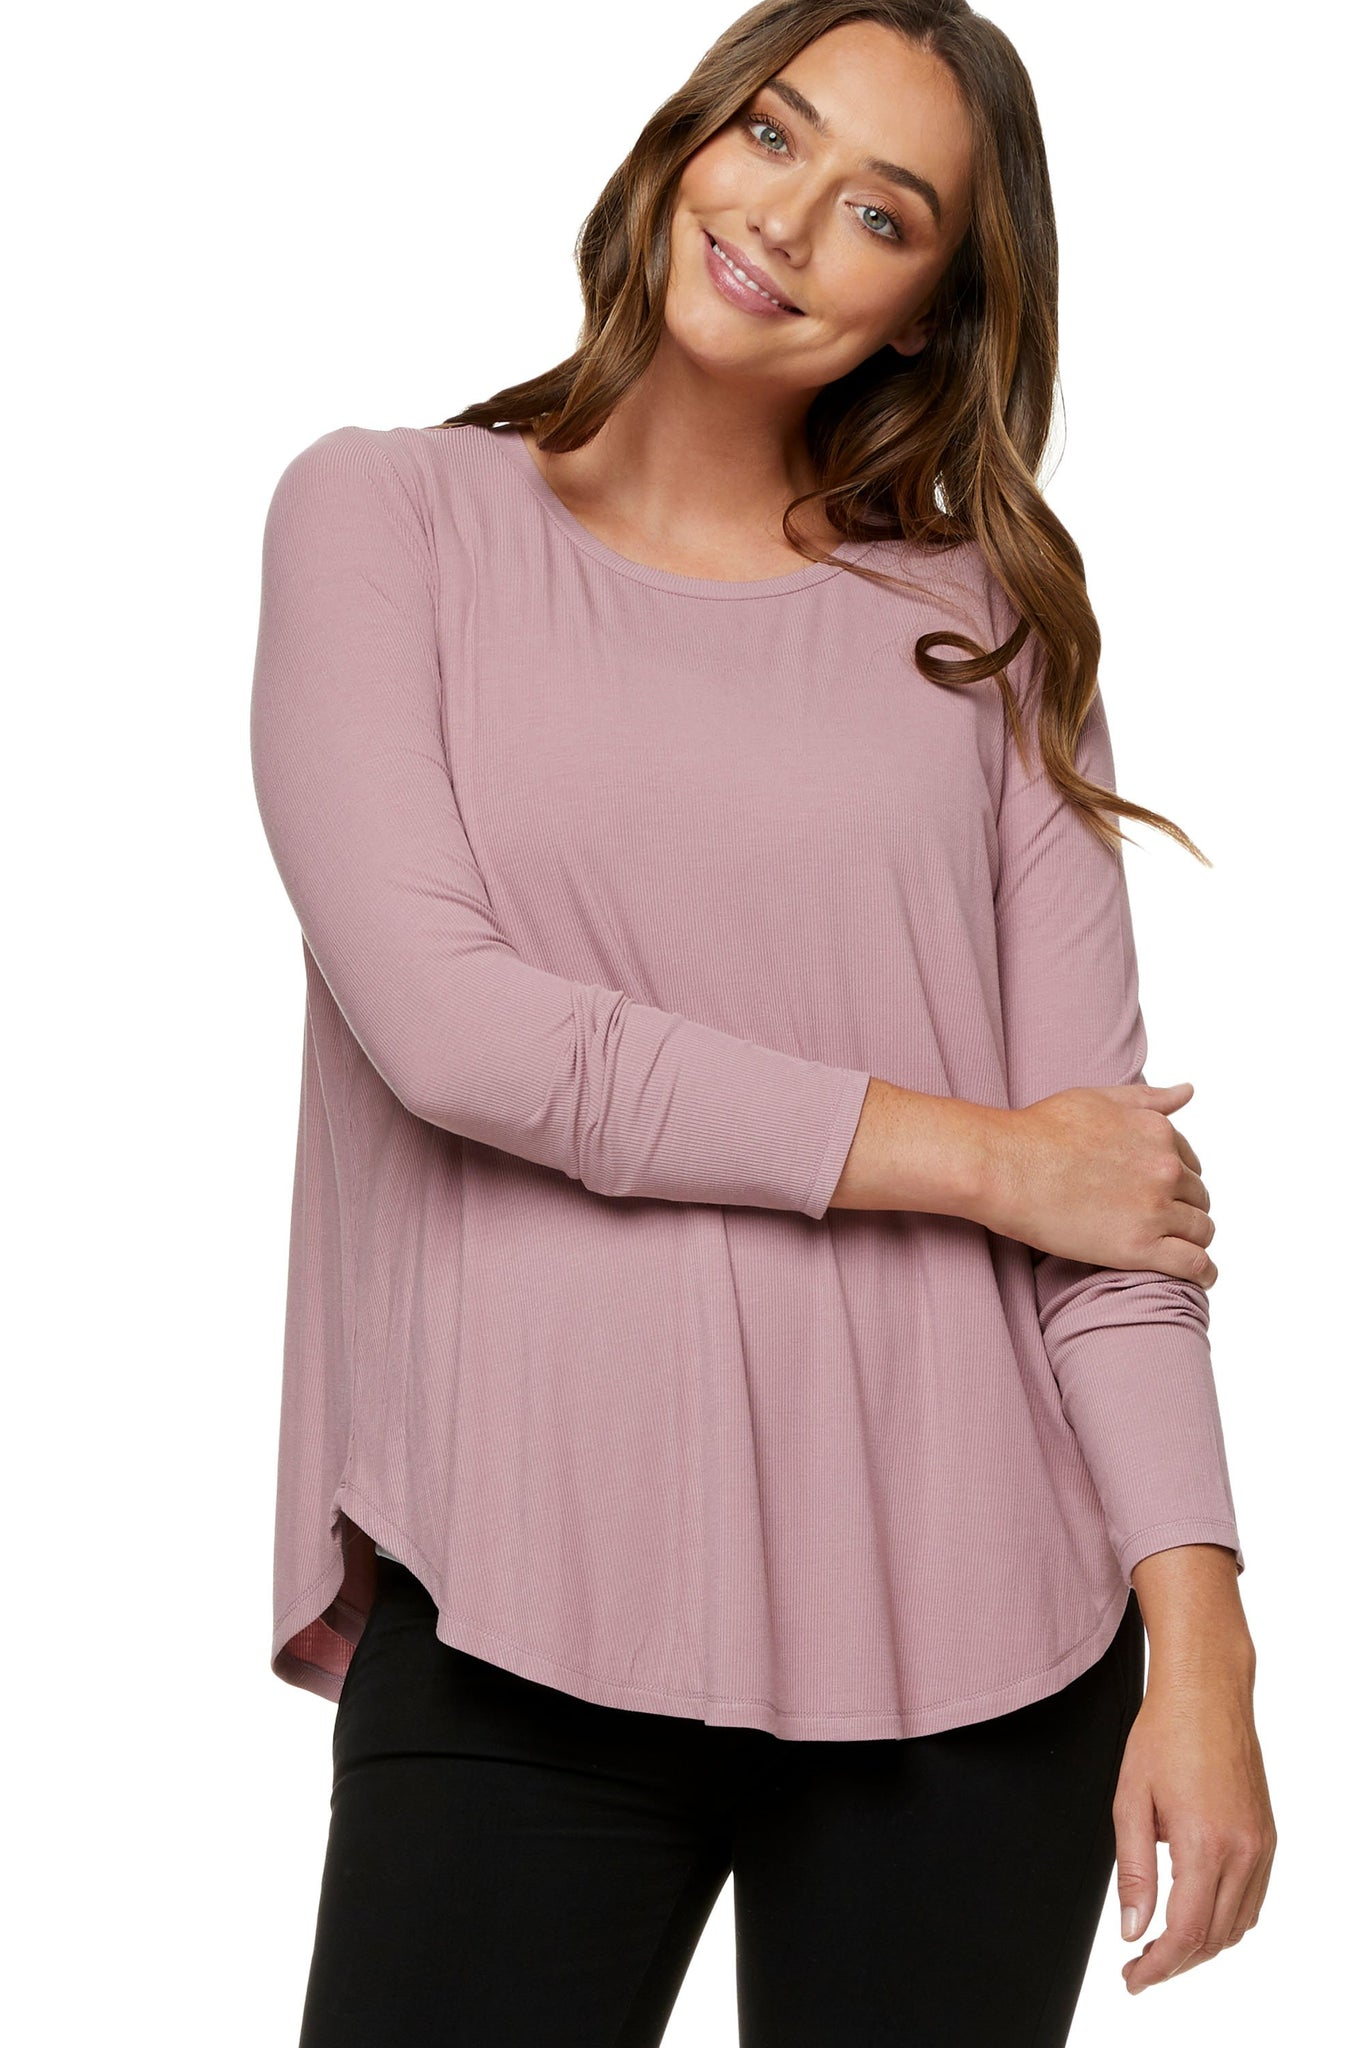 Pink long sleeve nursing top 8